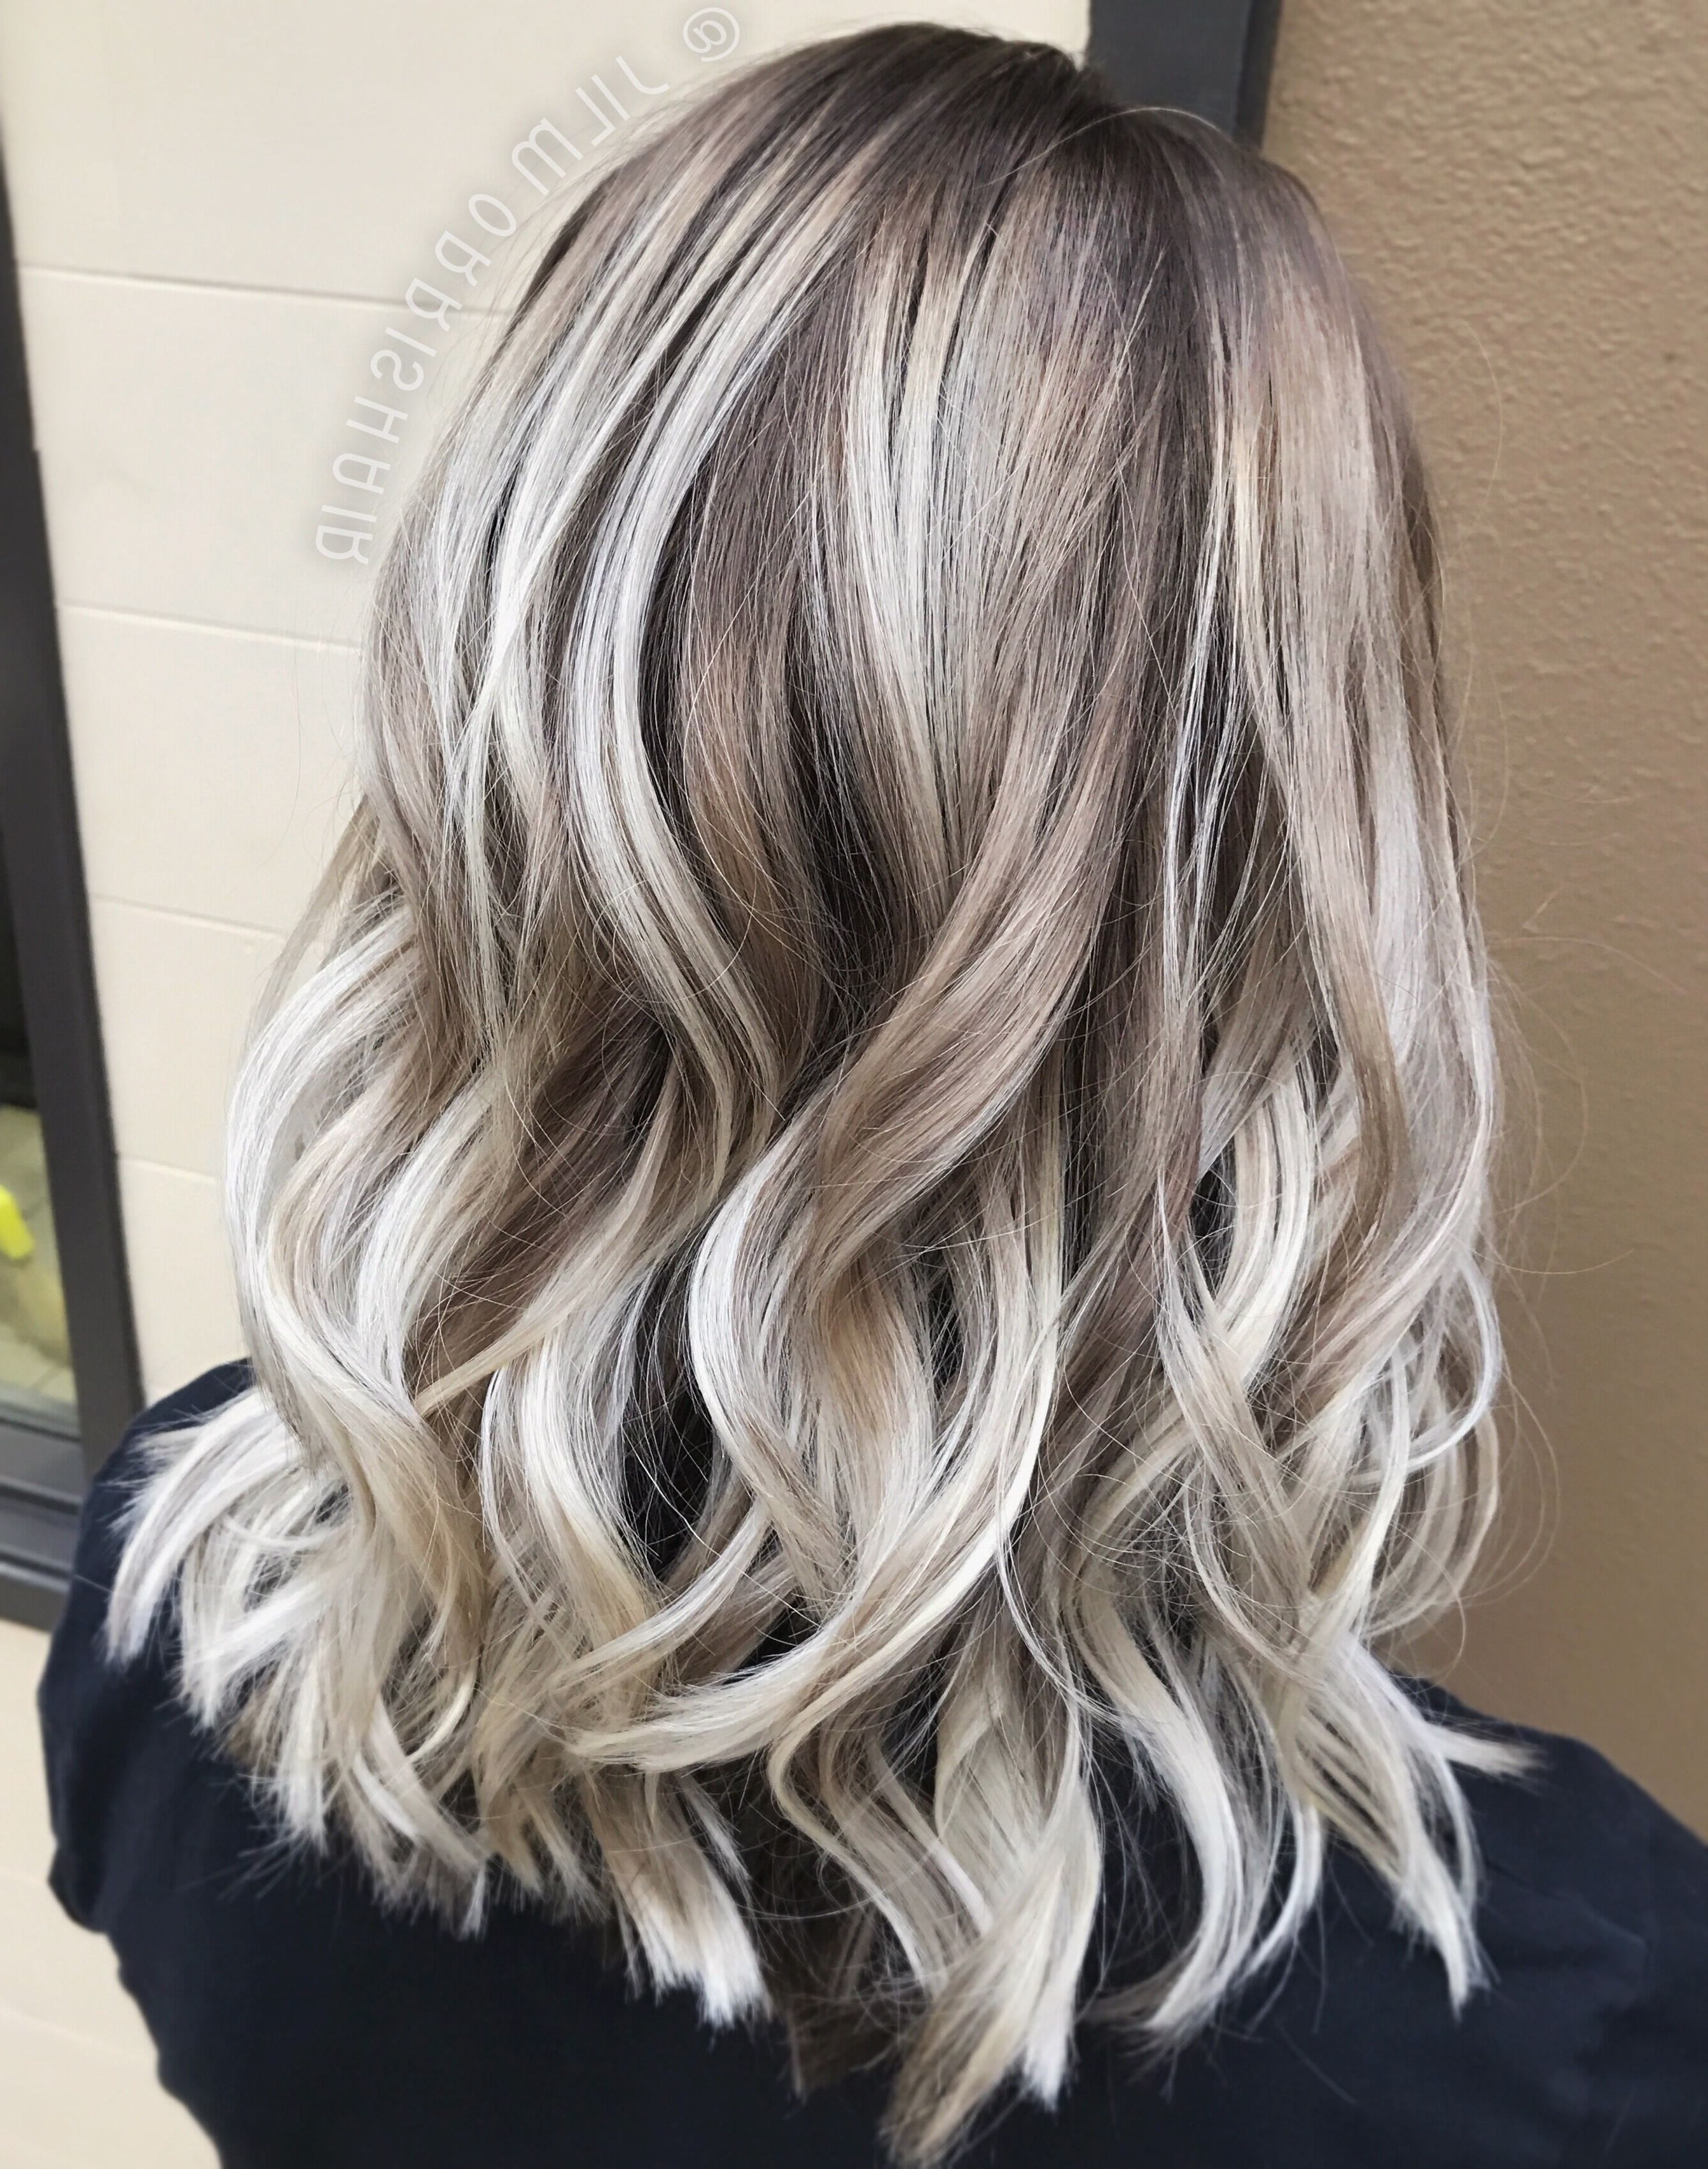 White Ash Blonde Balayage, Shadow Root, Curls In A Textured Lob Regarding Most Popular Blunt Cut White Gold Lob Blonde Hairstyles (View 20 of 20)